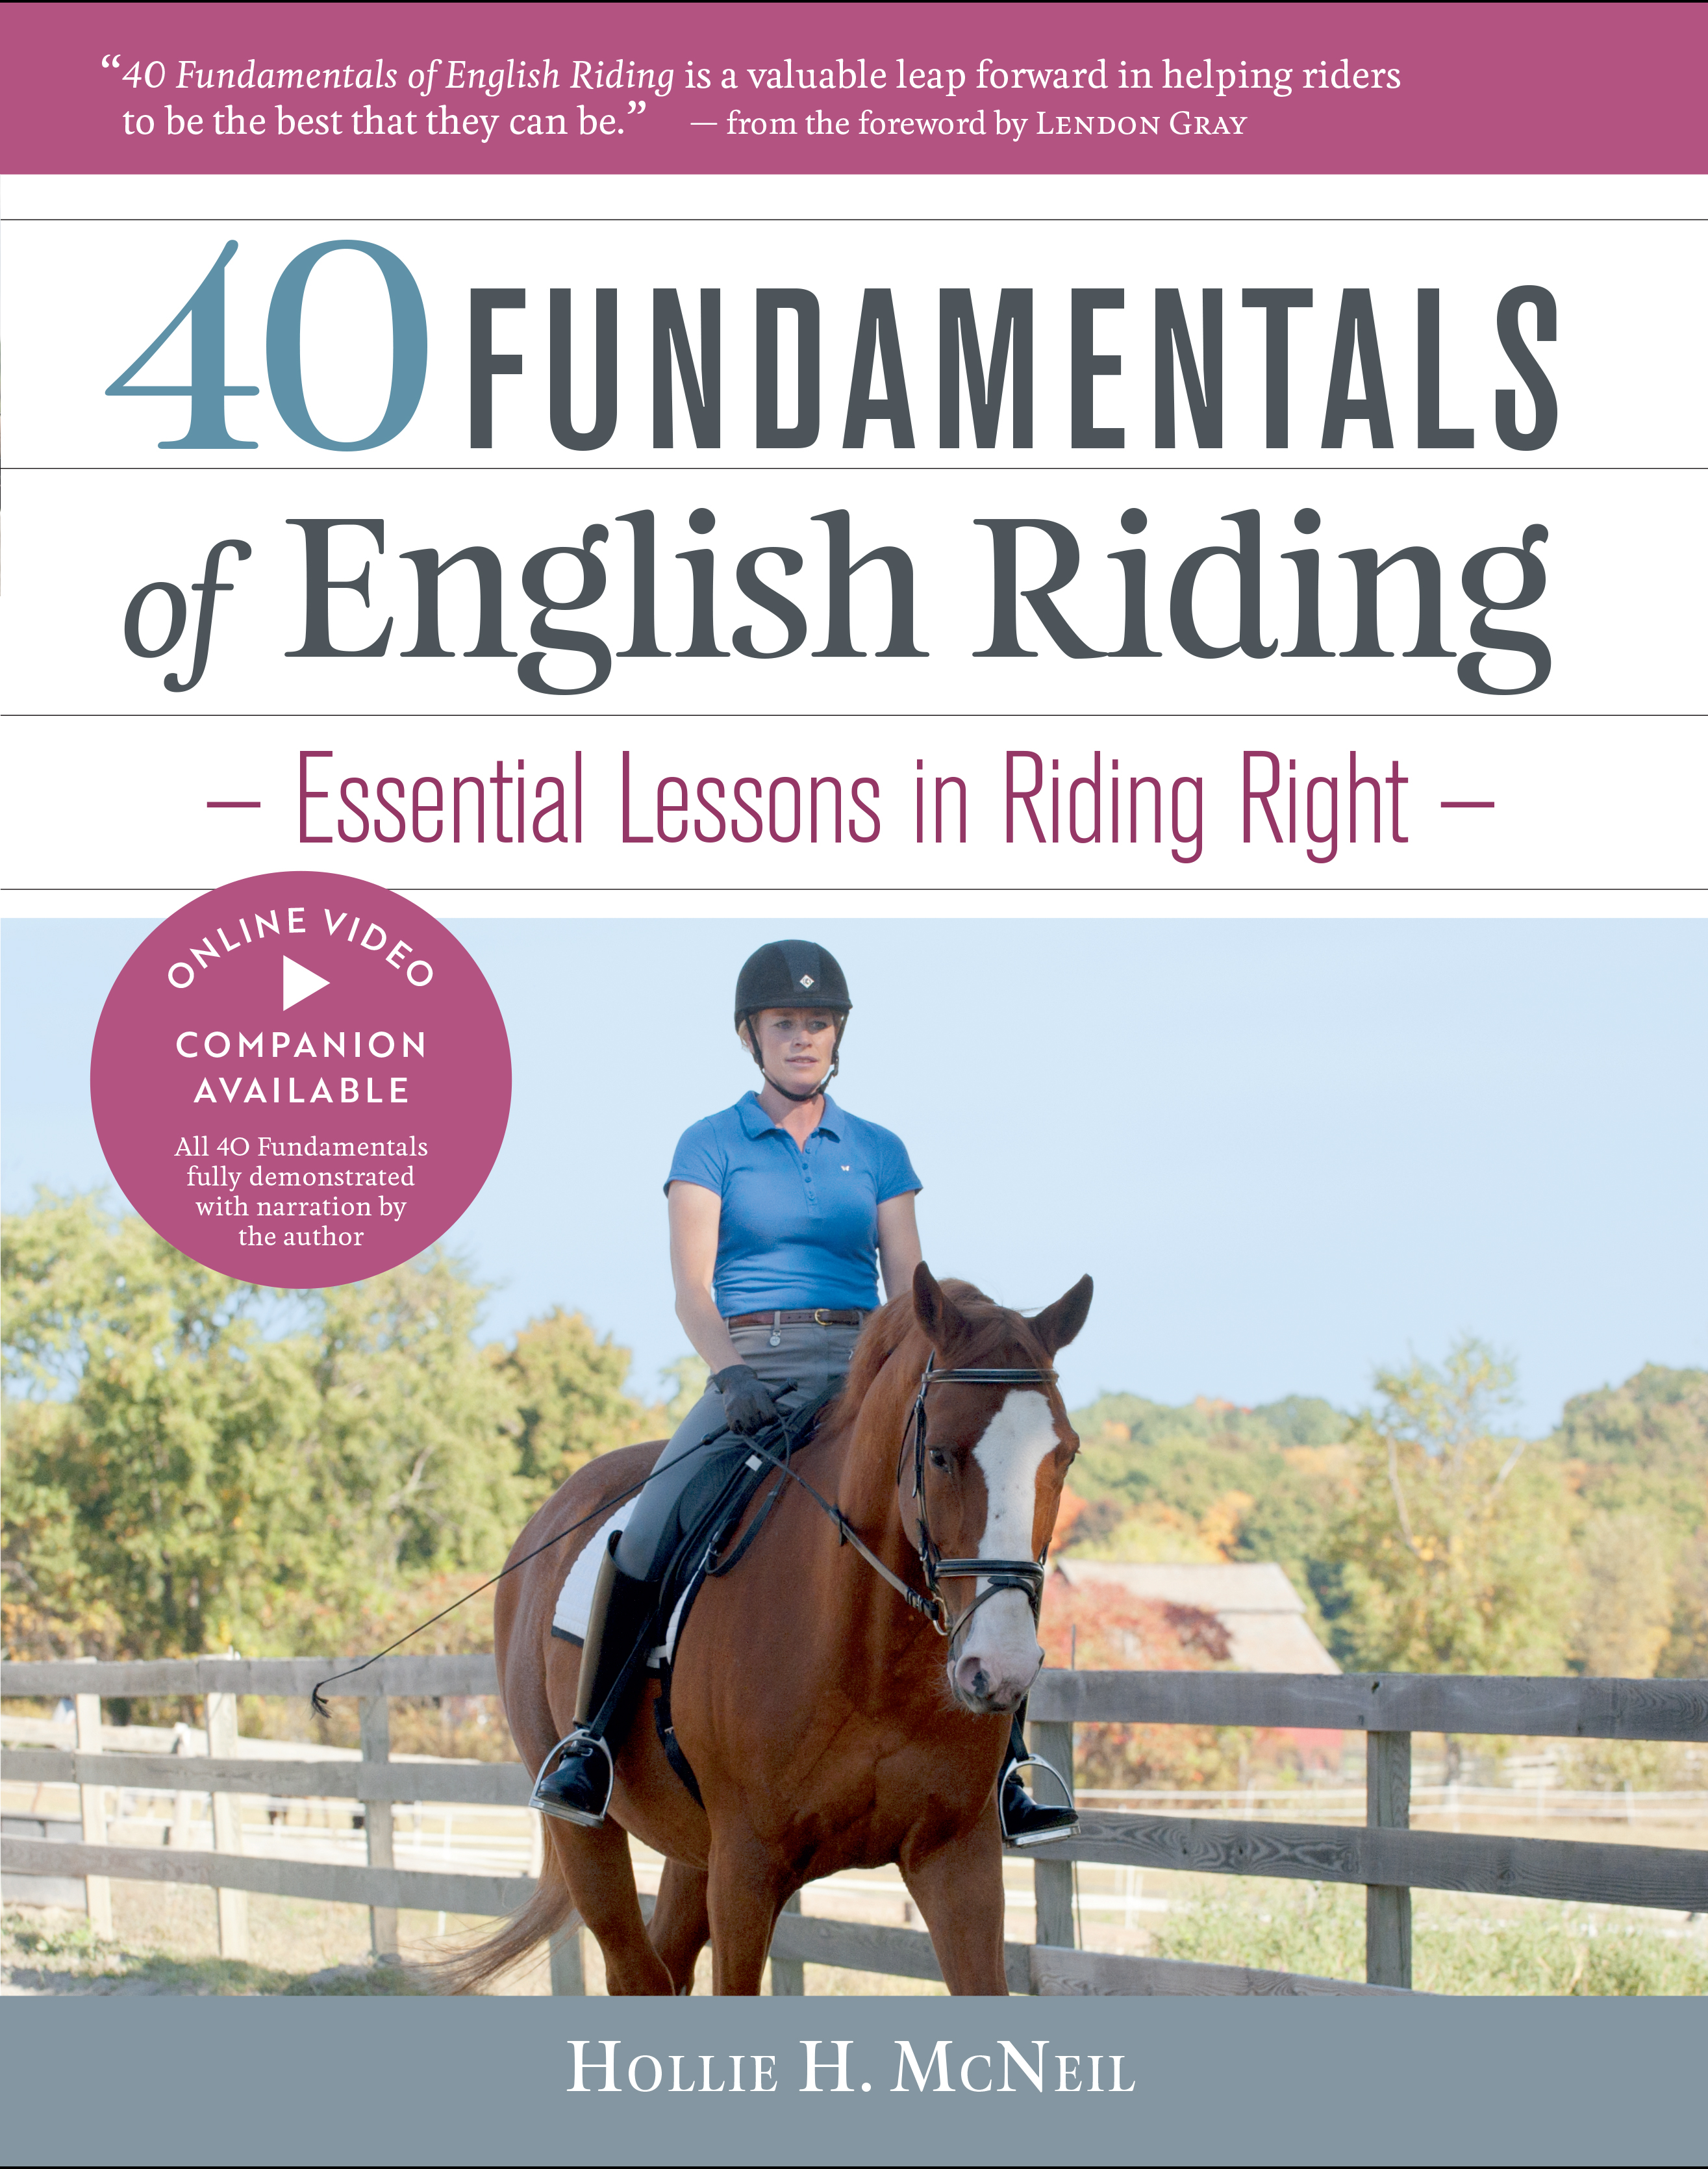 40 Fundamentals of English Riding Essential Lessons in Riding Right - Hollie H. McNeil